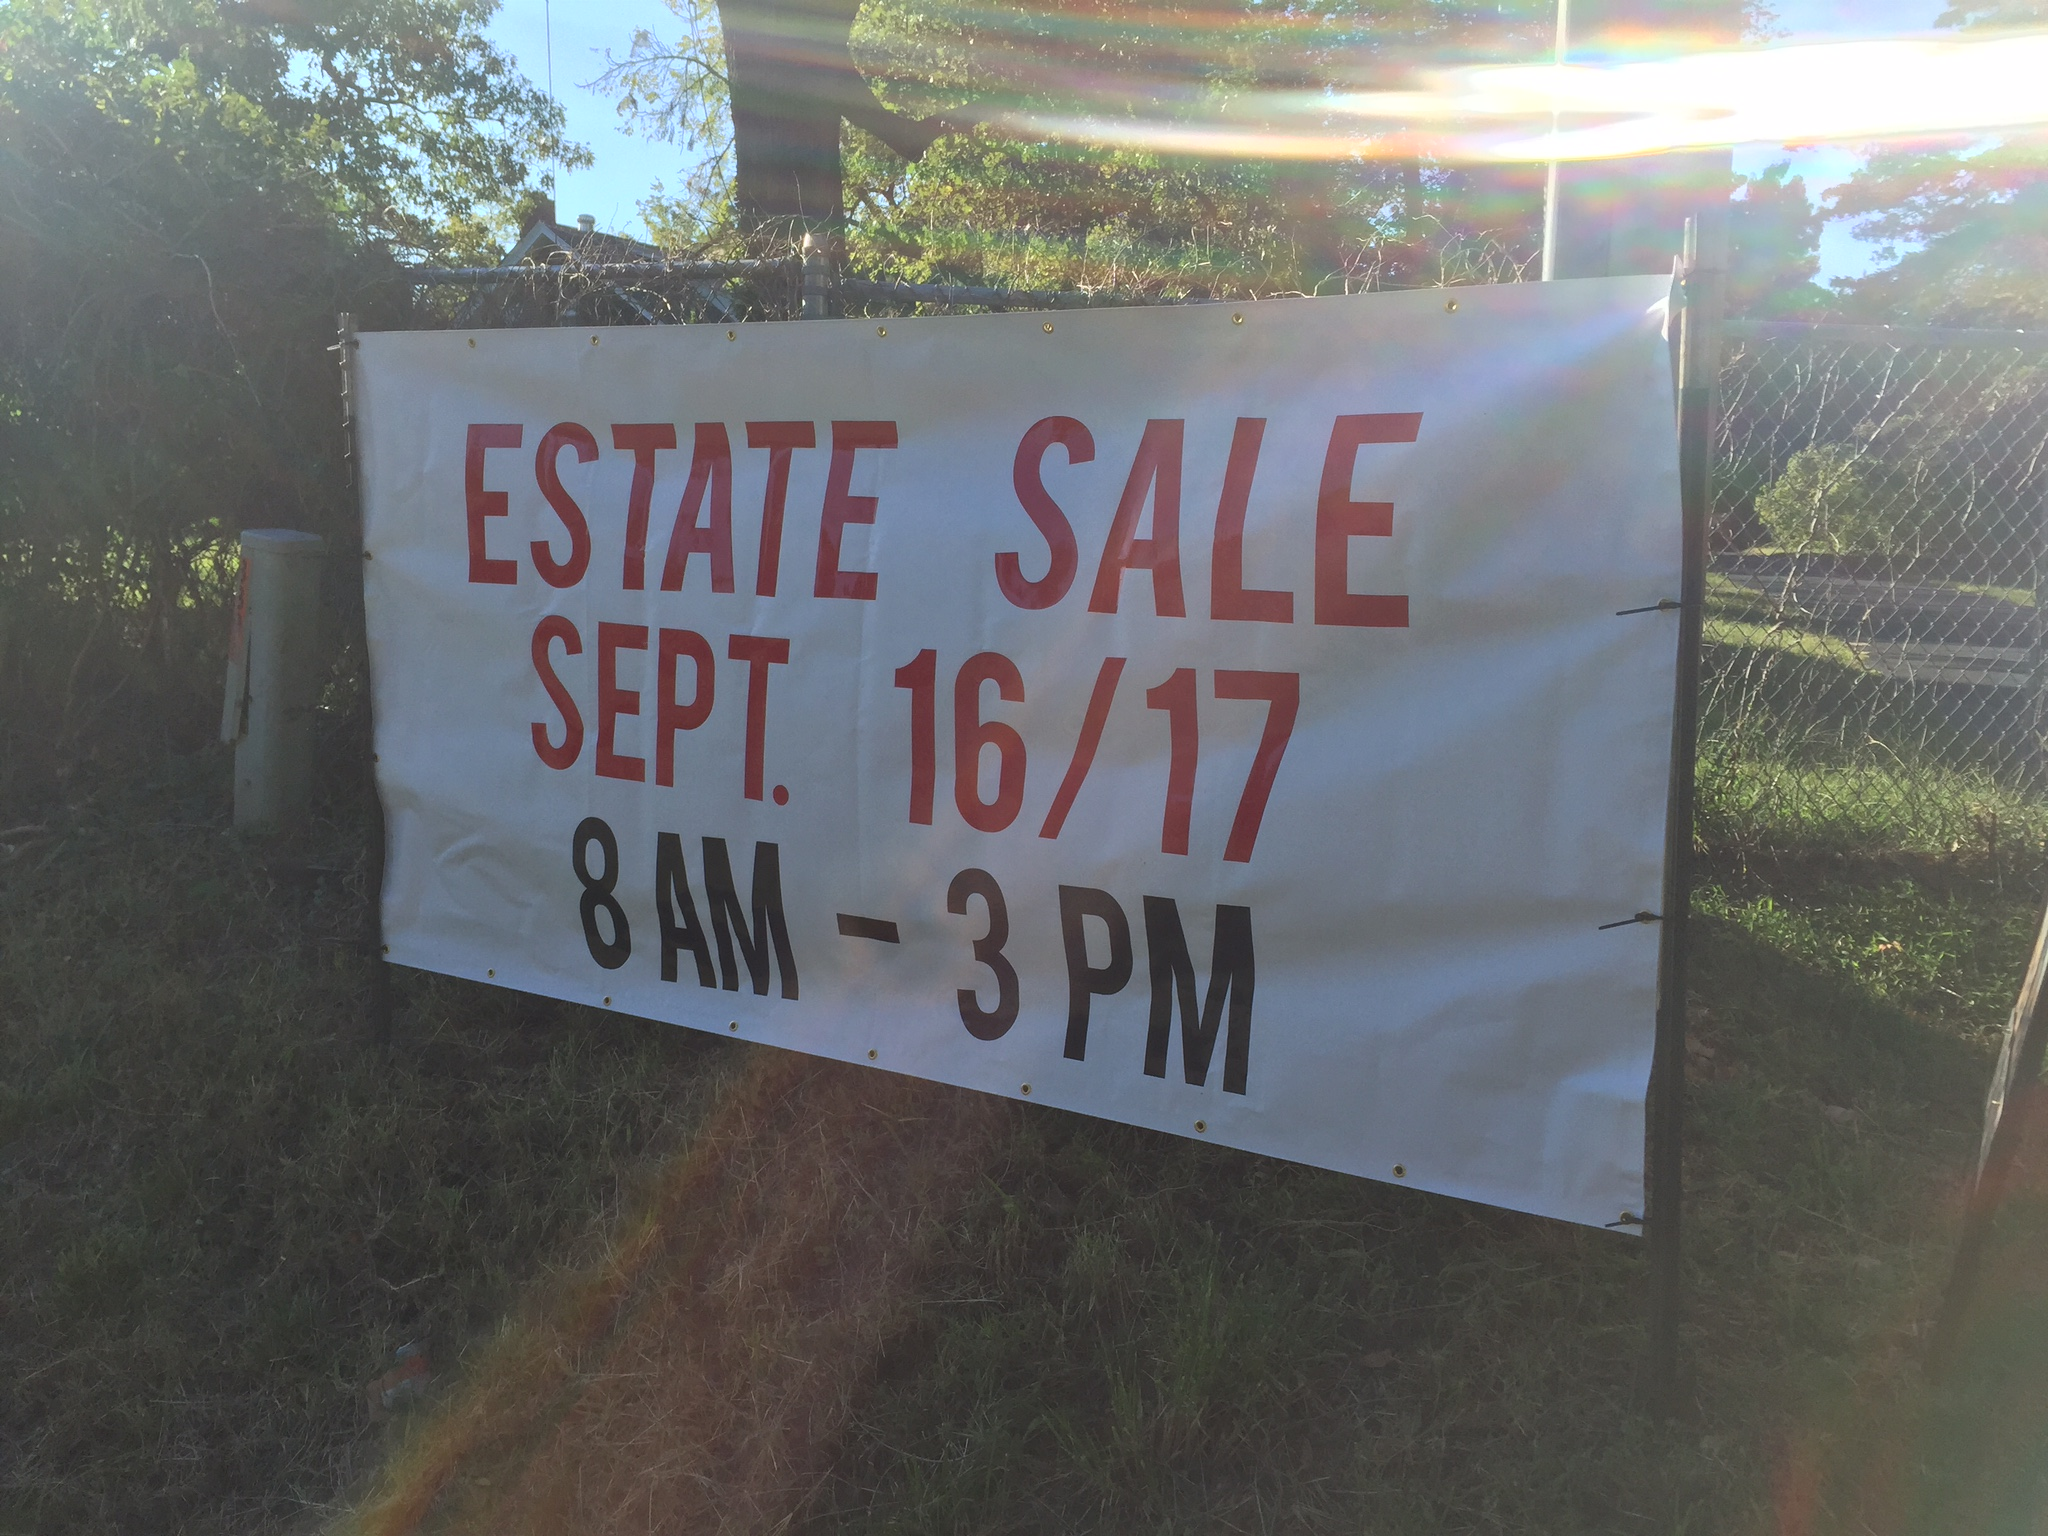 A sign advertising an estate sale